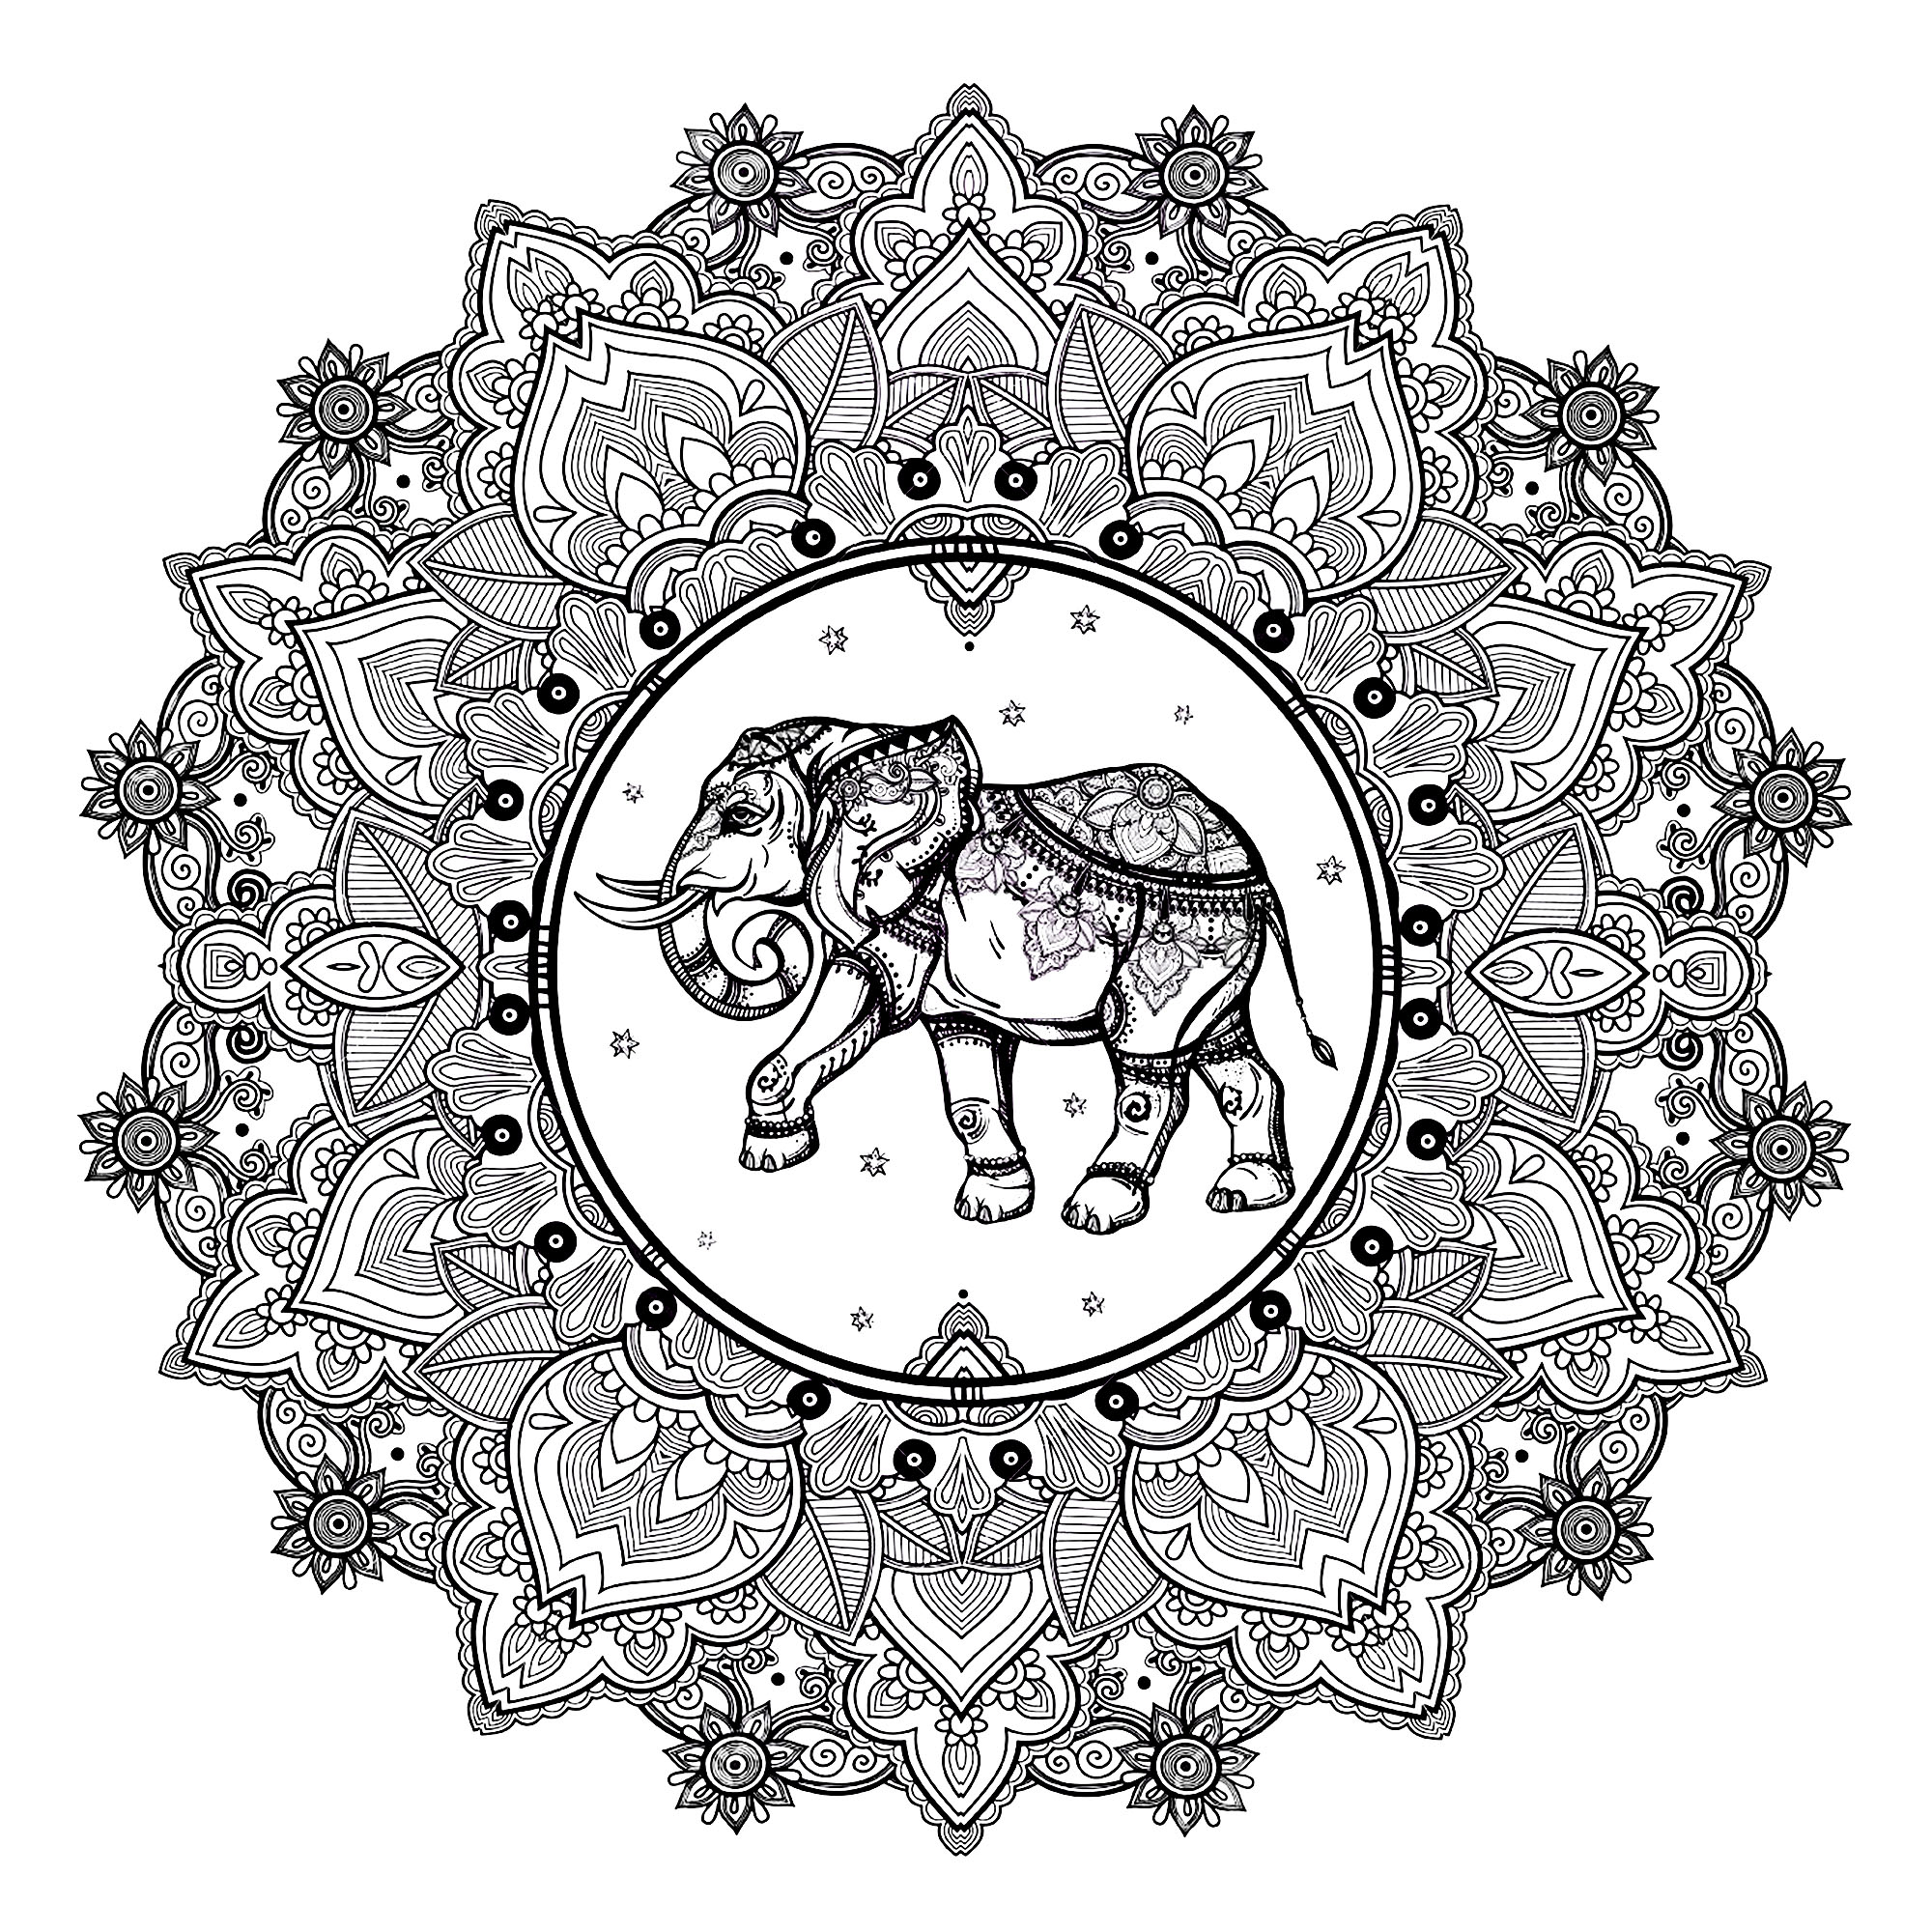 Mandala Elephant 123rf Mandalas Coloring Pages for Adults Printable ...